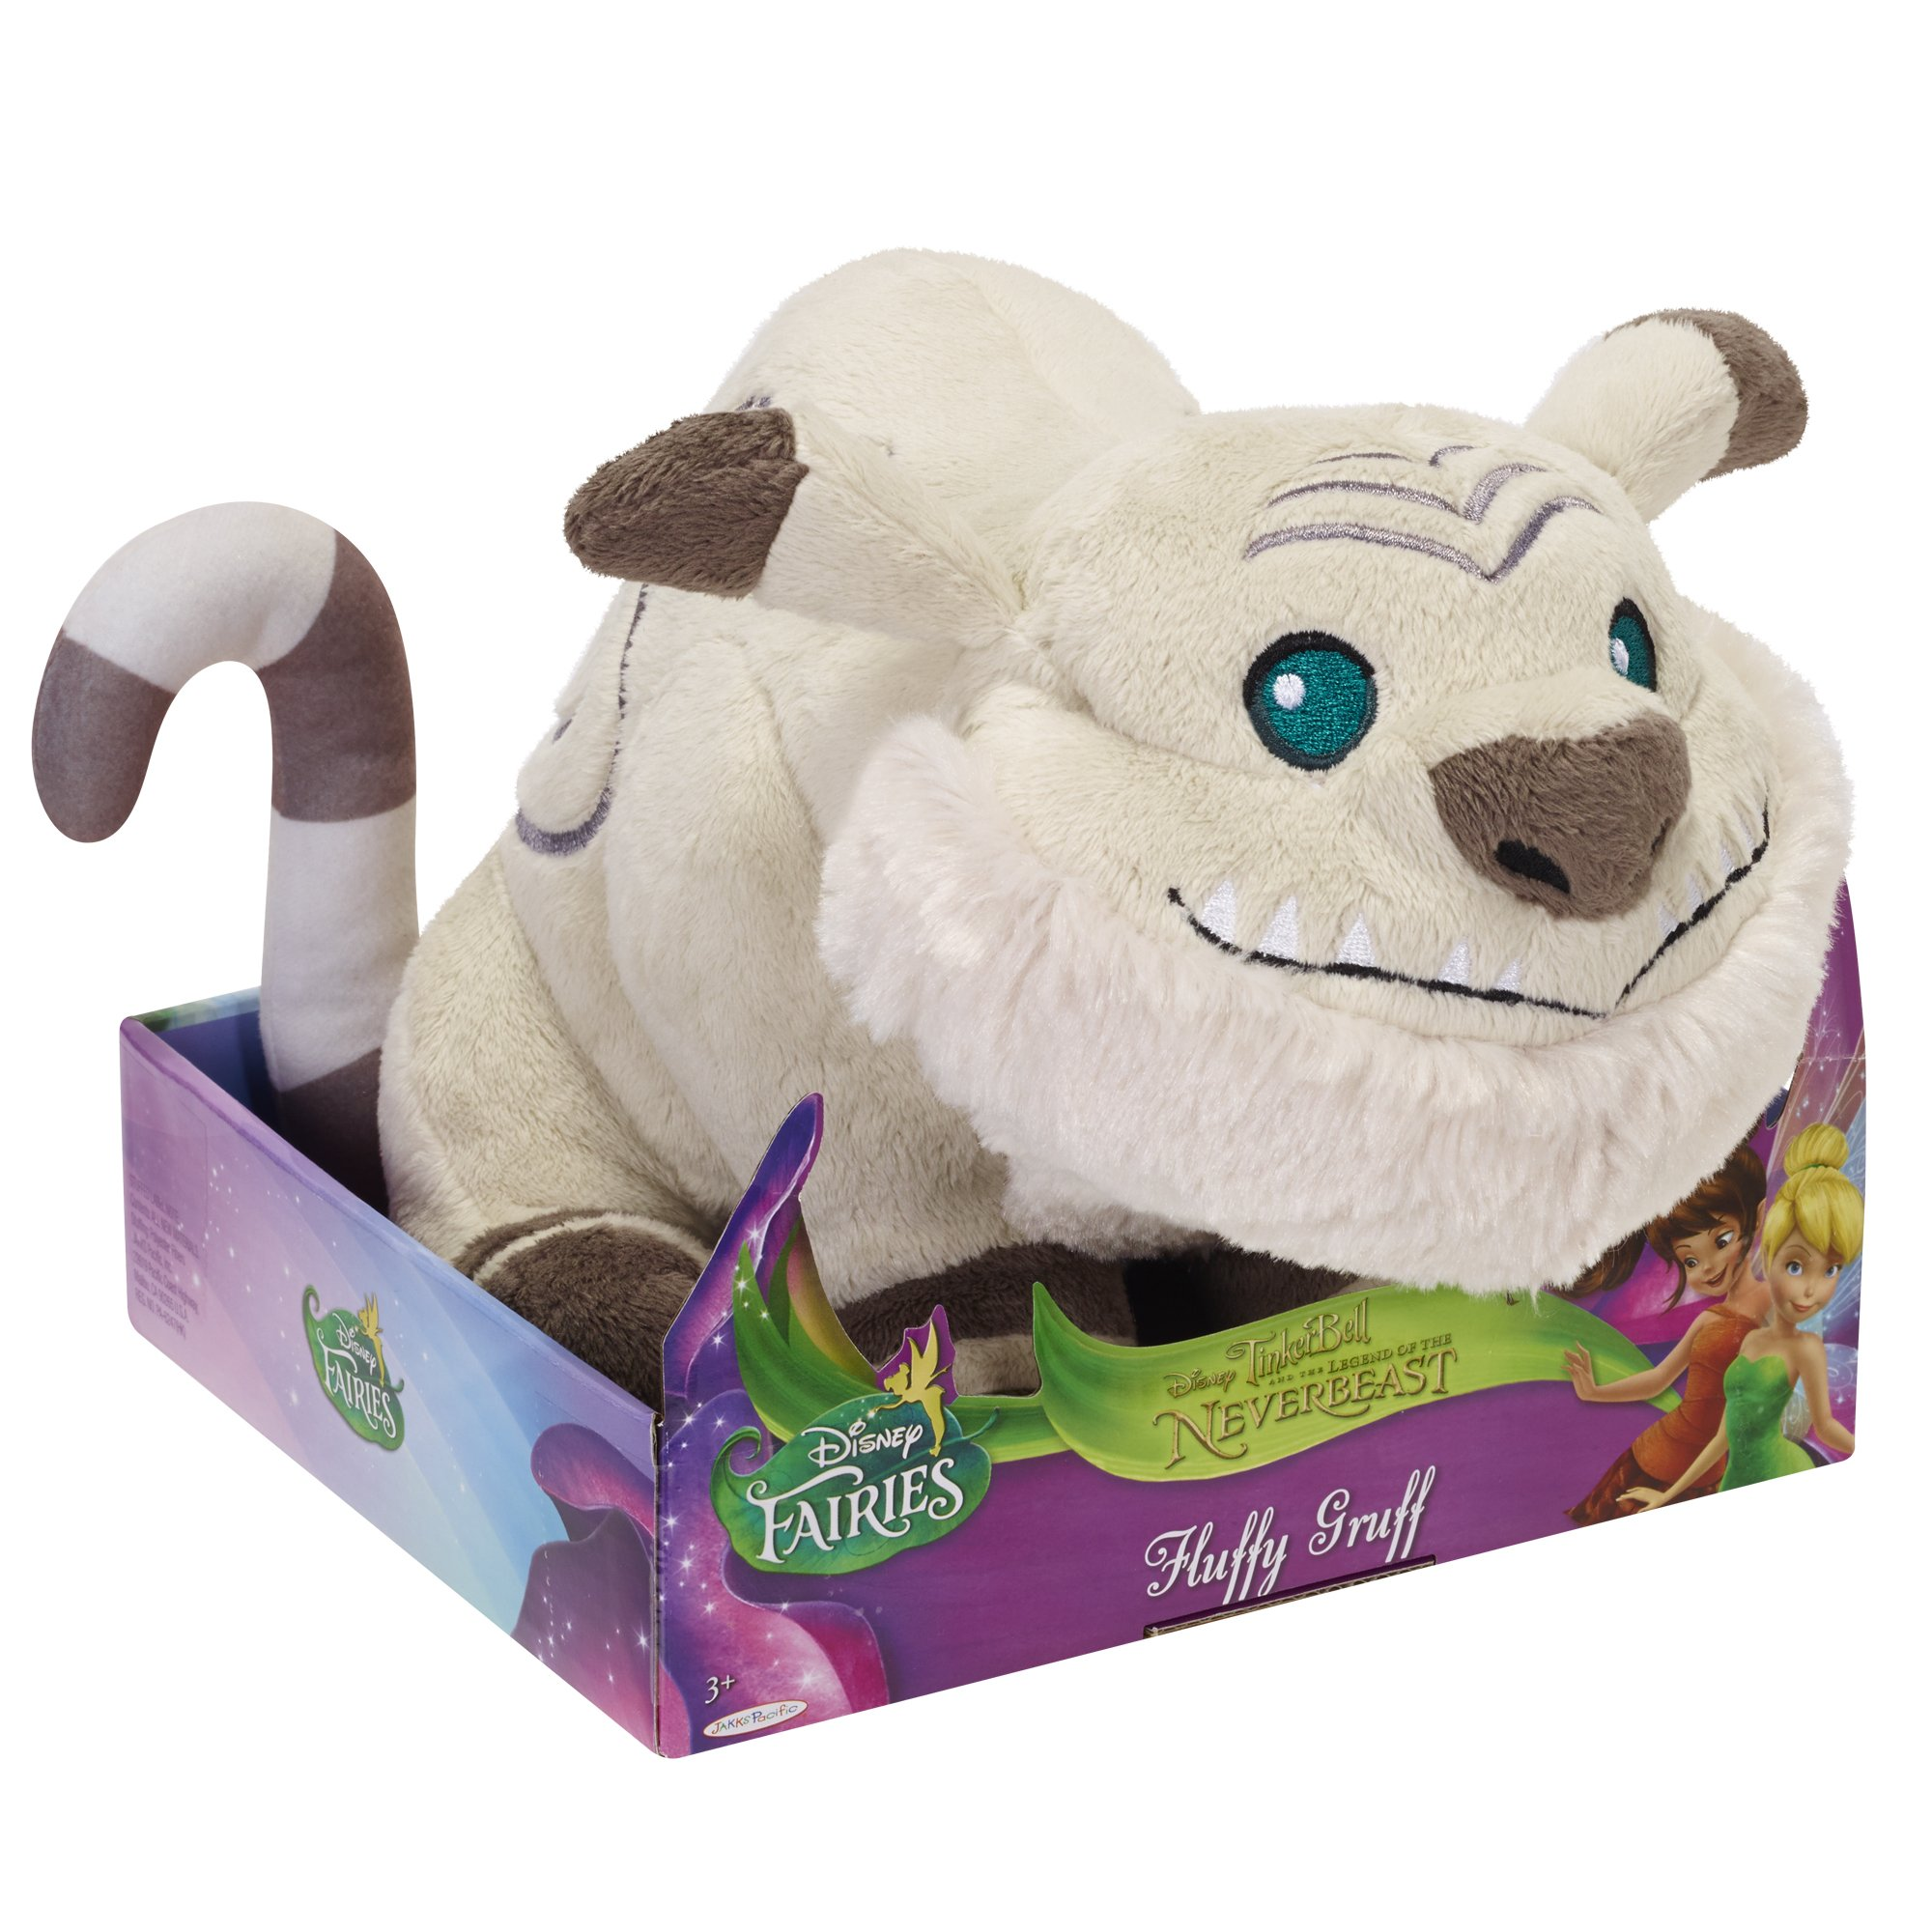 Disney Fairies Gruff NeverBeast Plush